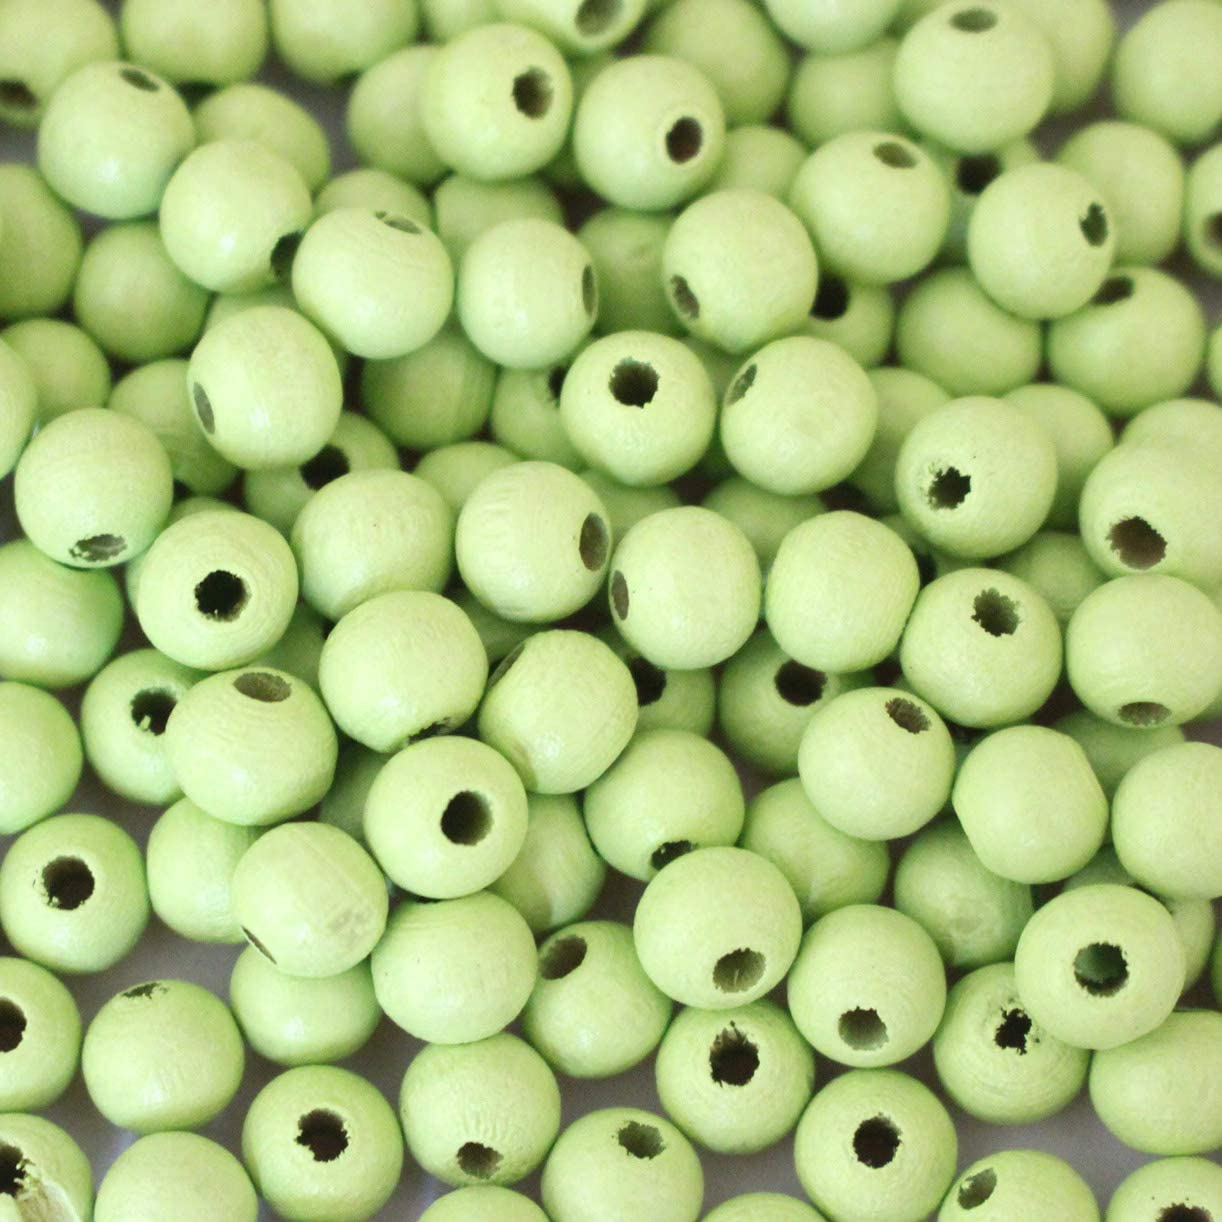 Tacool 500pcs Wood Beads Round Beads for Jewelry DIY Craft Making Loose Wooden Beads fit Gemstone Beads (Apple Green, 8mm)